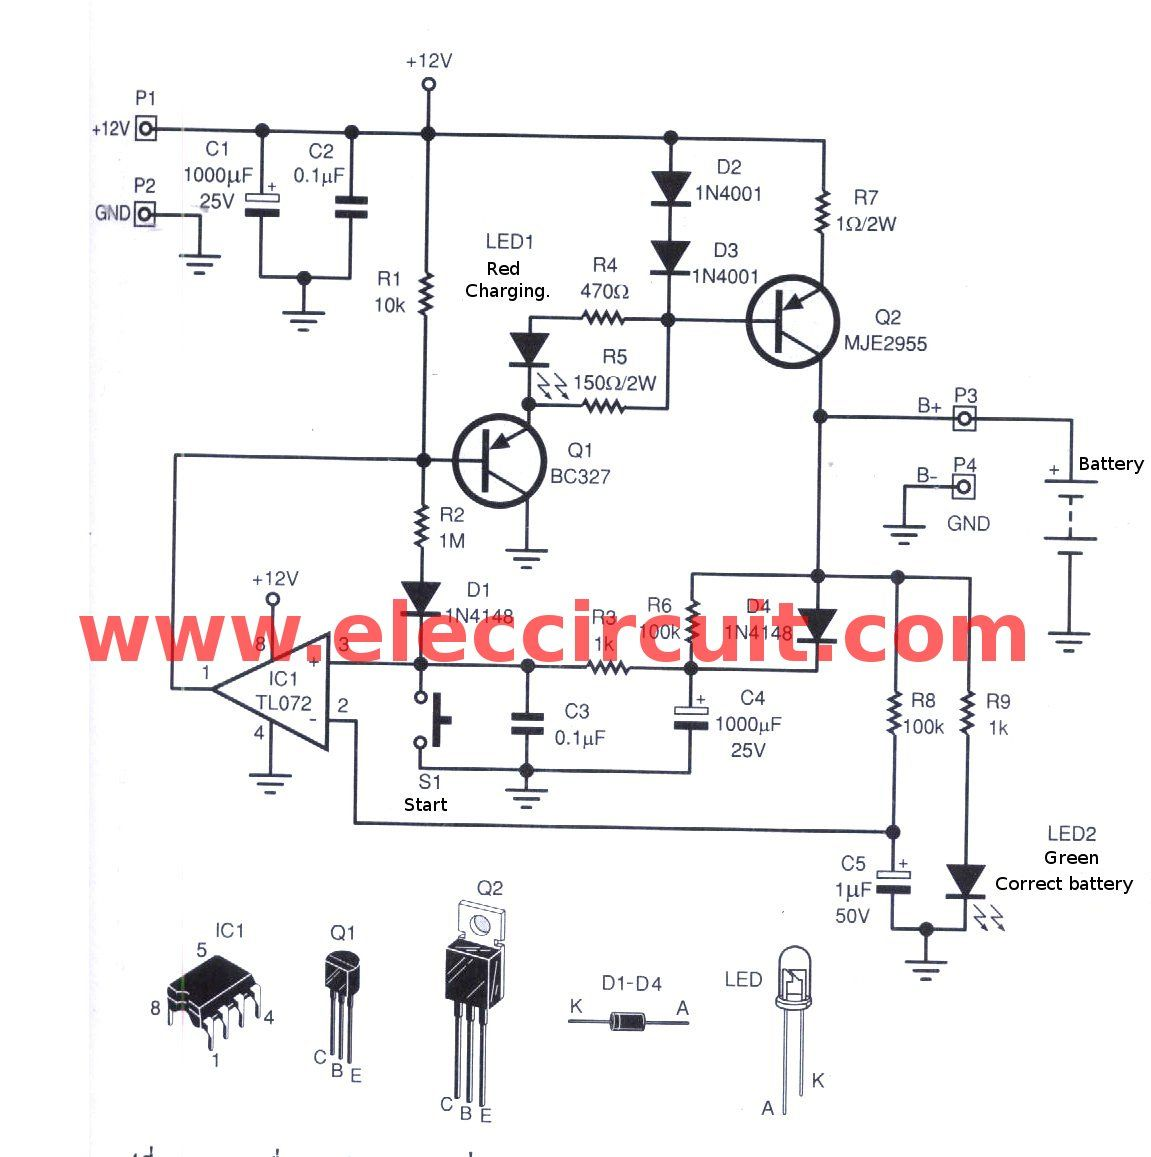 Automatic Nimh Battery Charger Circuit Cutoff When Full Working Of Hybrid Cars Electronic Circuits And Diagramelectronics The Project Is On Automatically Shut Off Fully Charged Can Charge Batteries 1 10 Pcs Depending Input Voltage